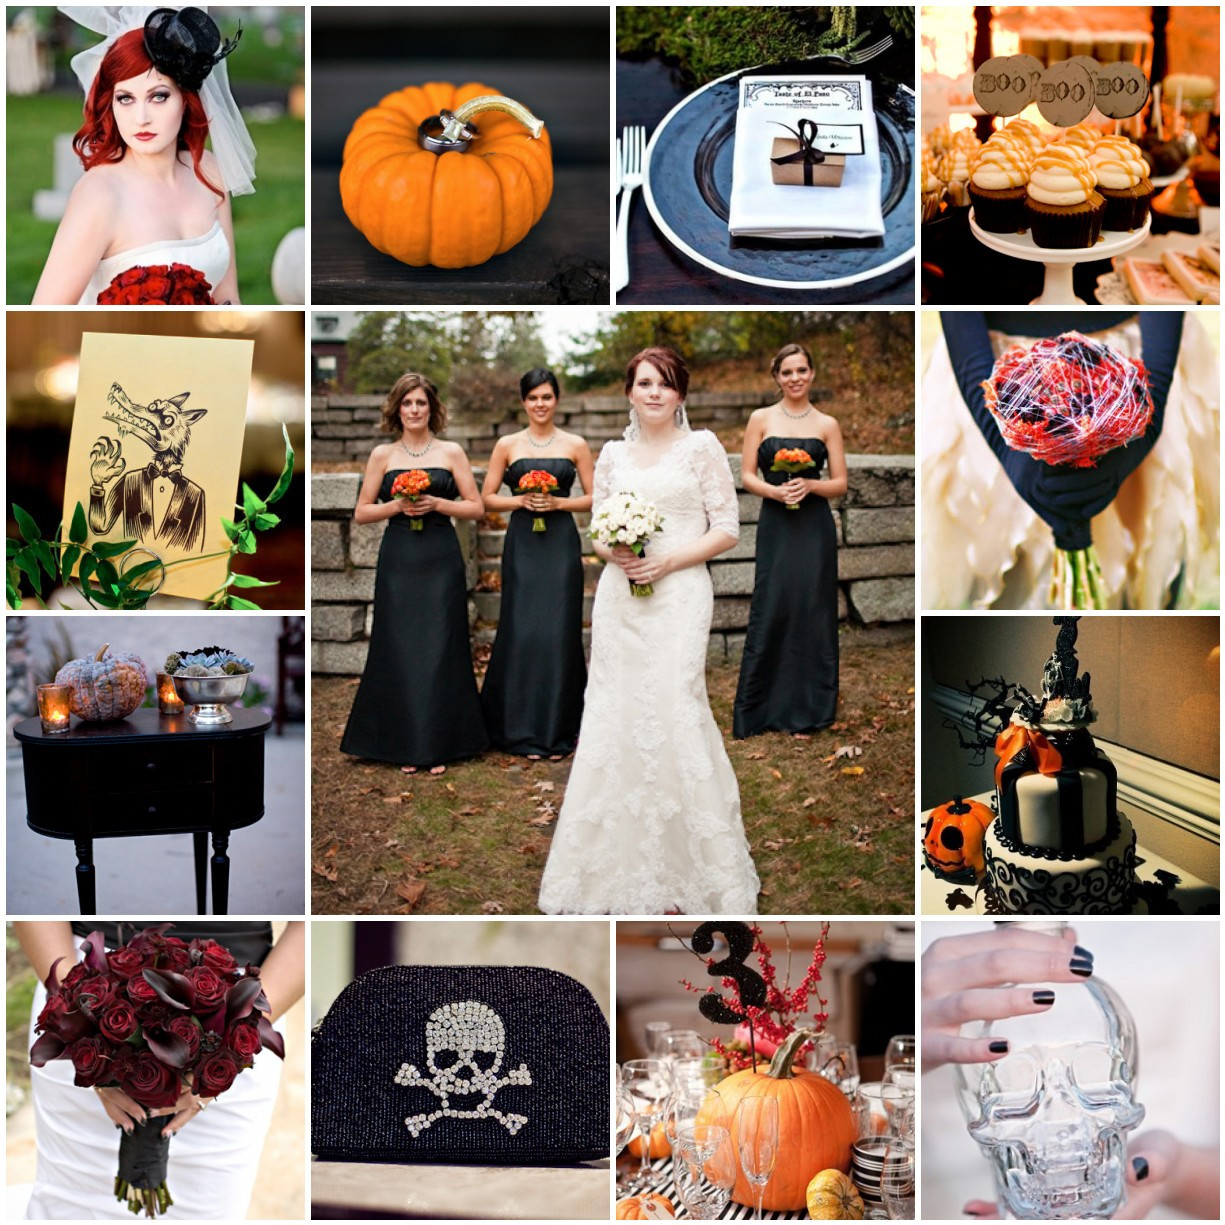 Halloween Themed Weddings  Spooky Halloween Wedding Sirmione Wedding